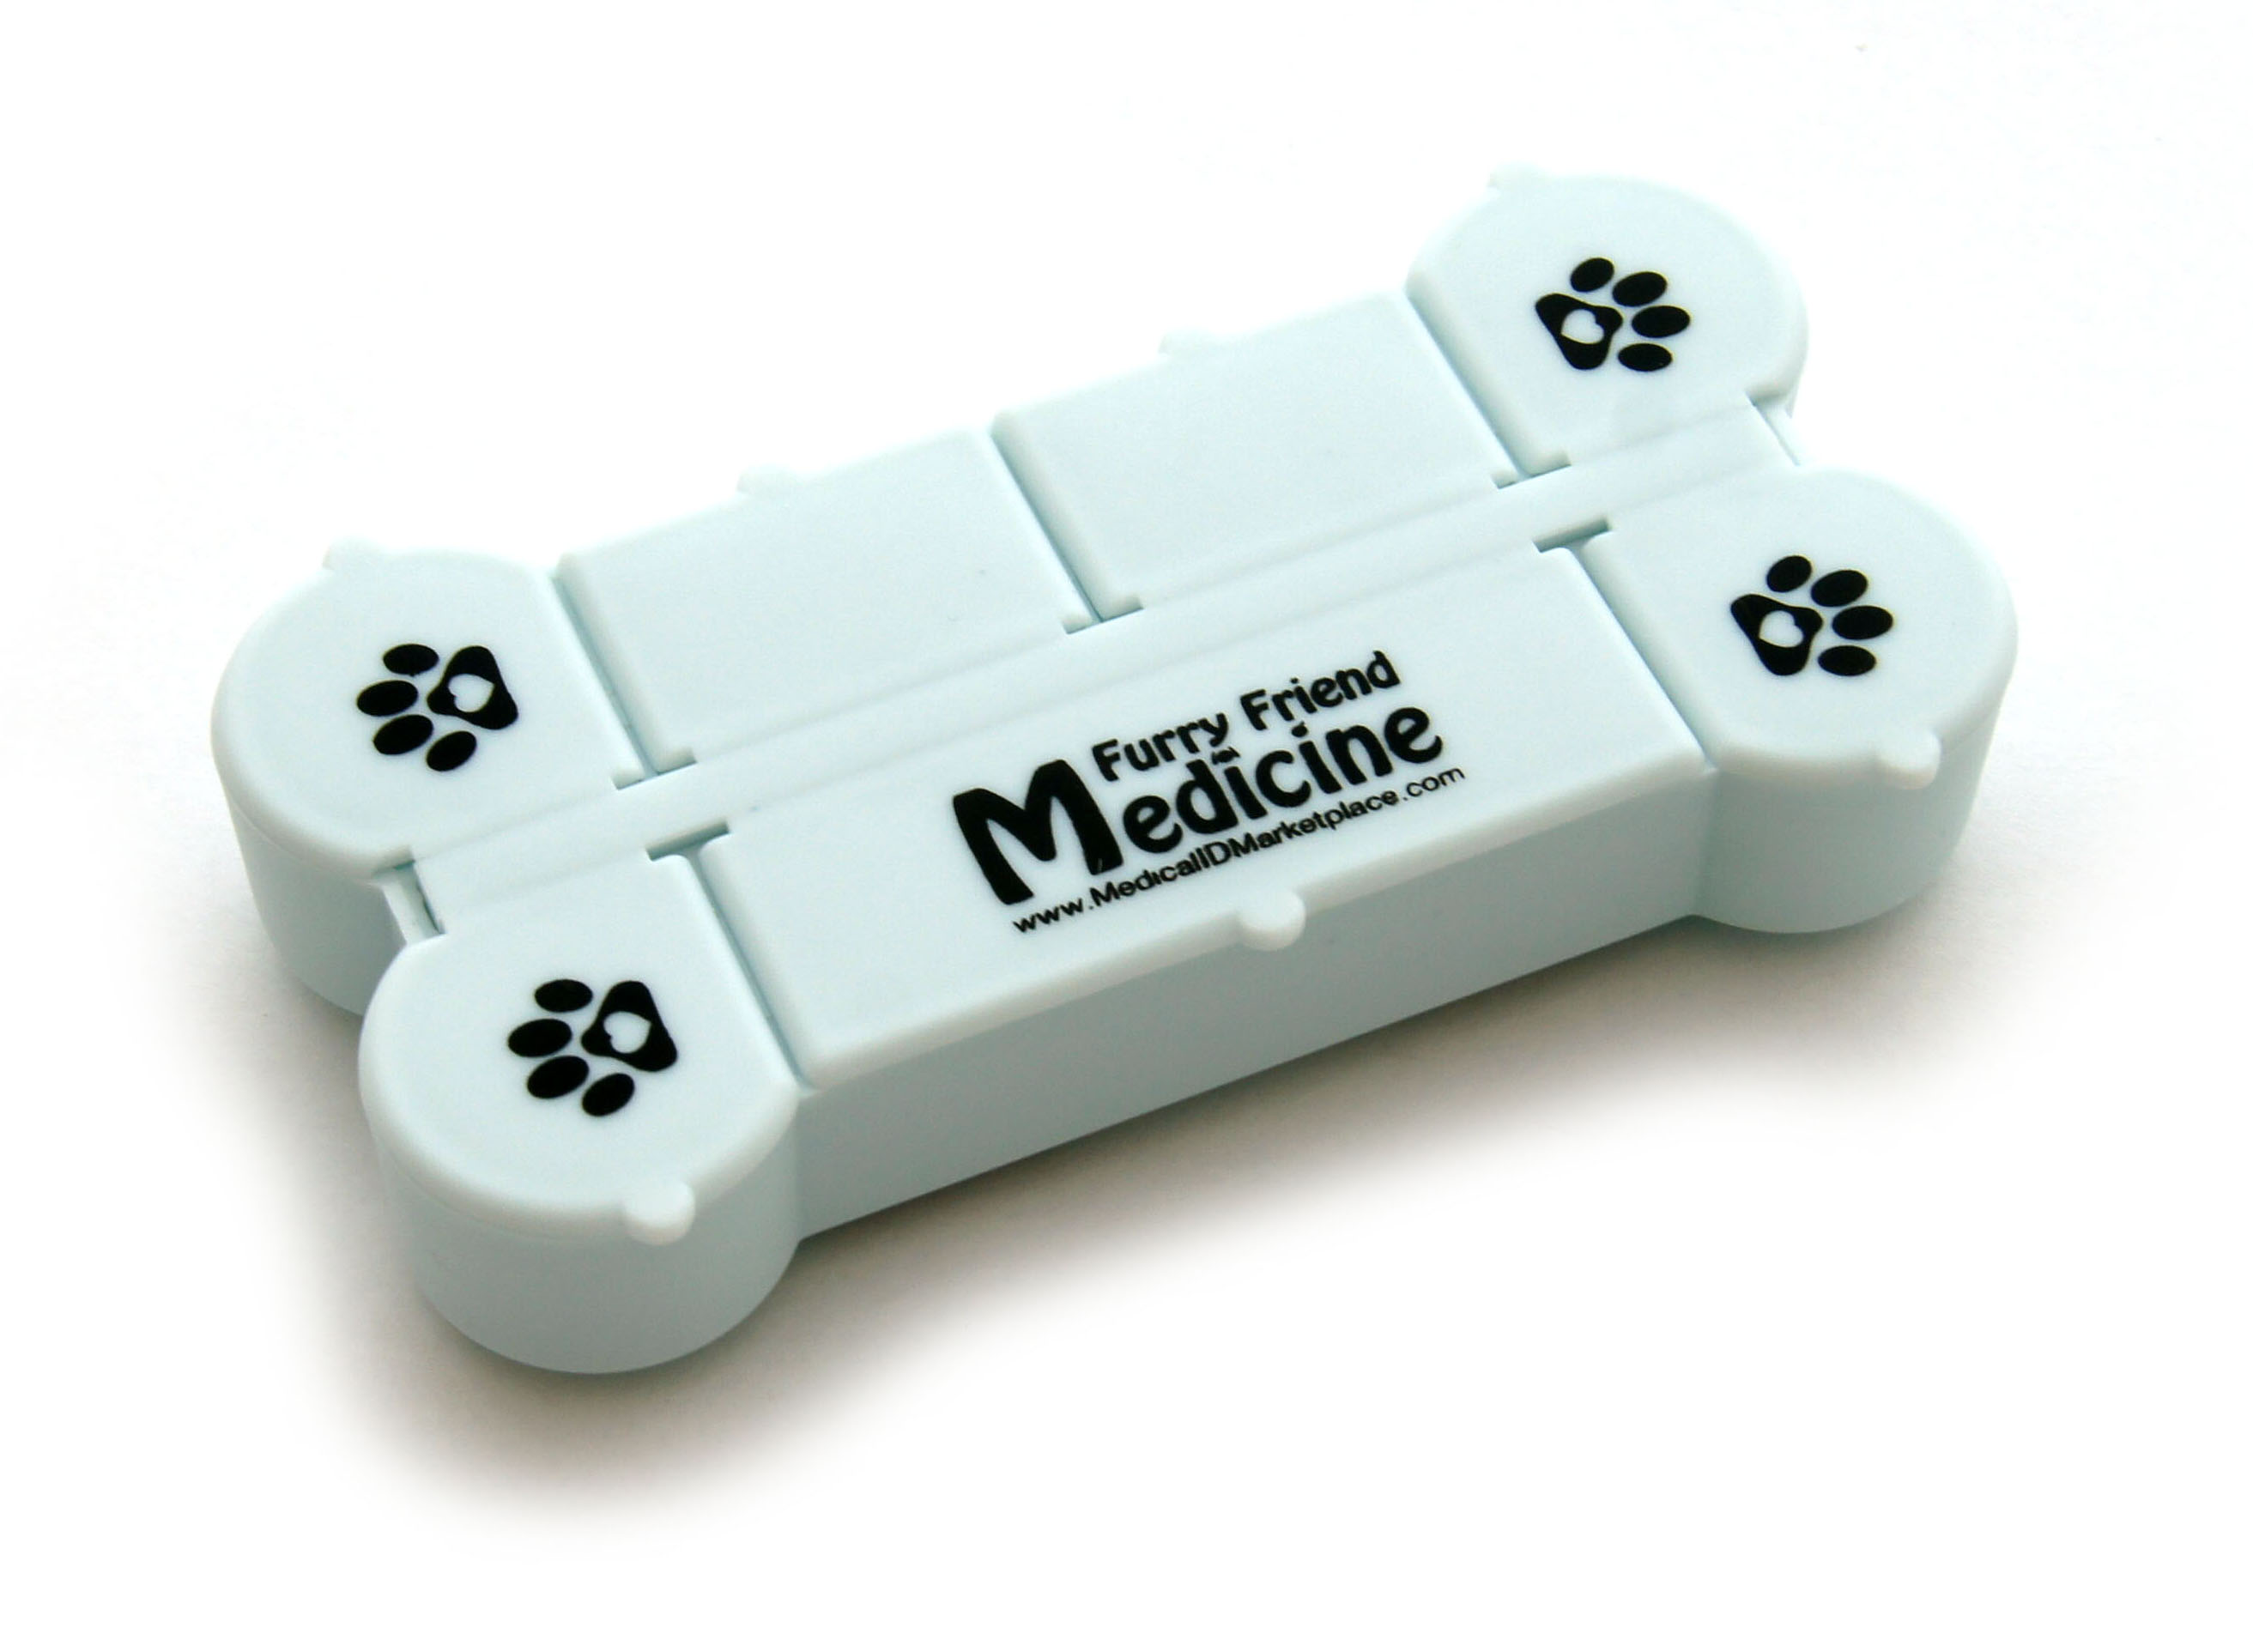 Furry Friend Medicine Container